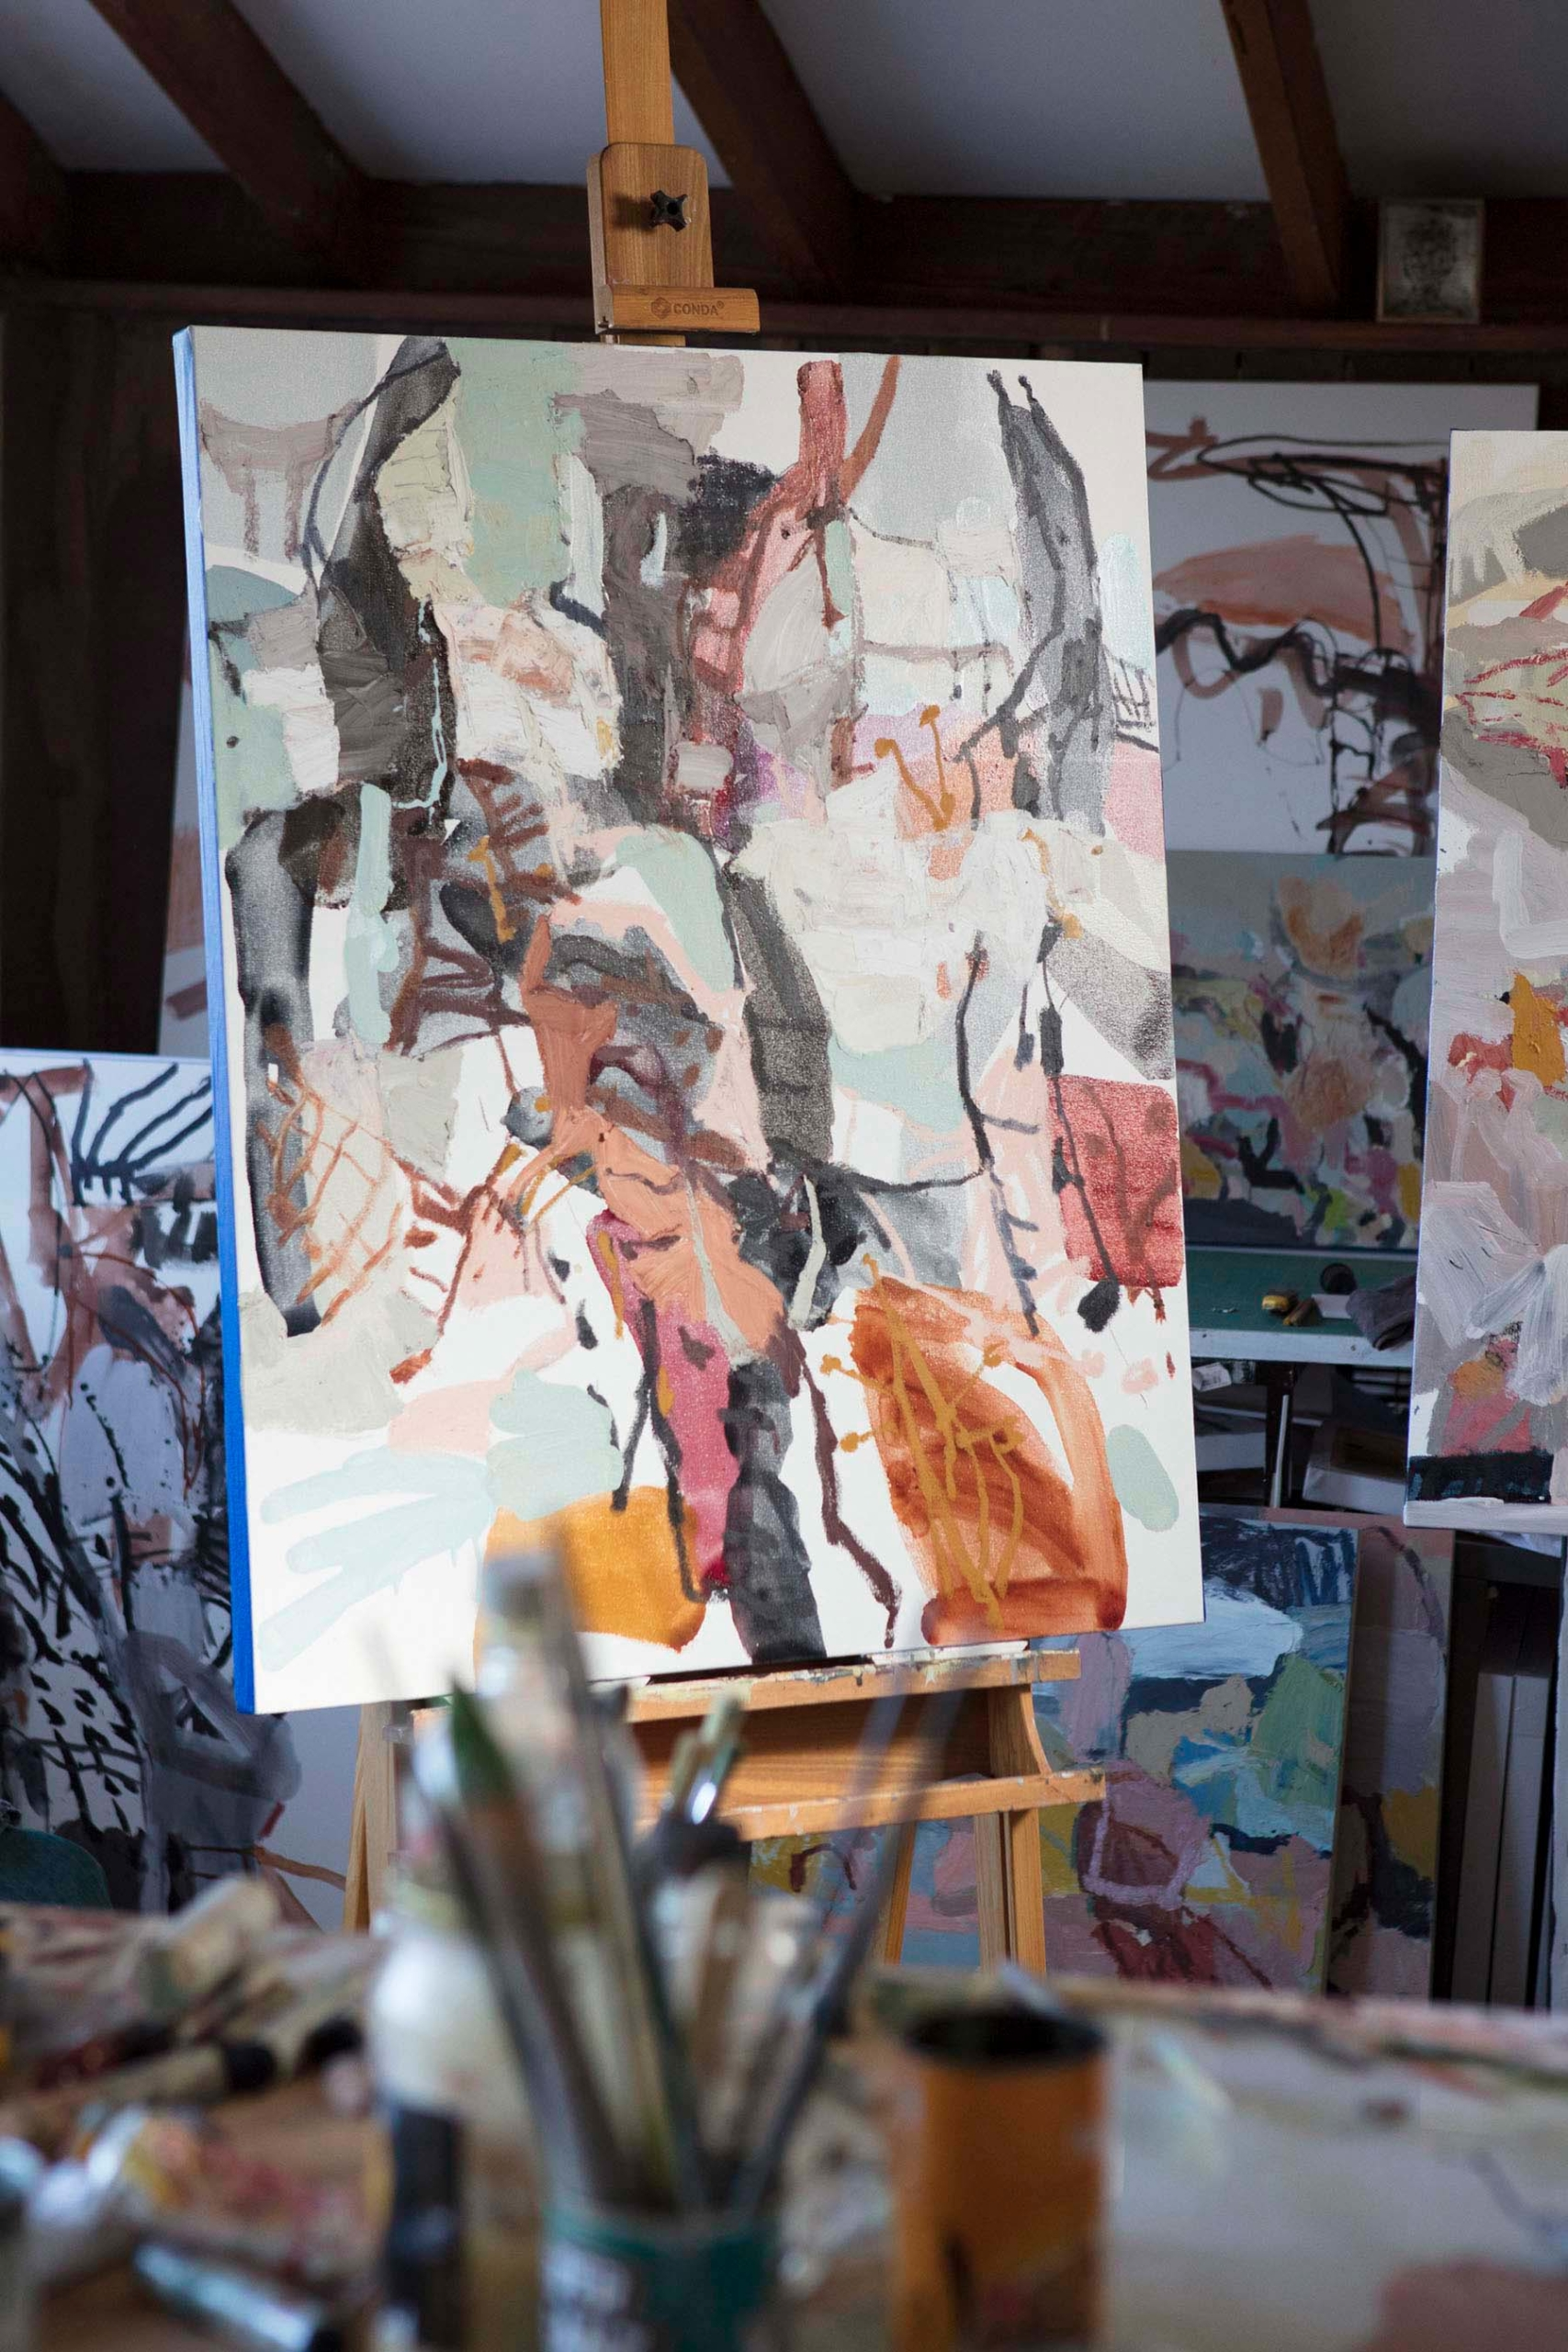 abstract artwork on an easel inside an artists studio